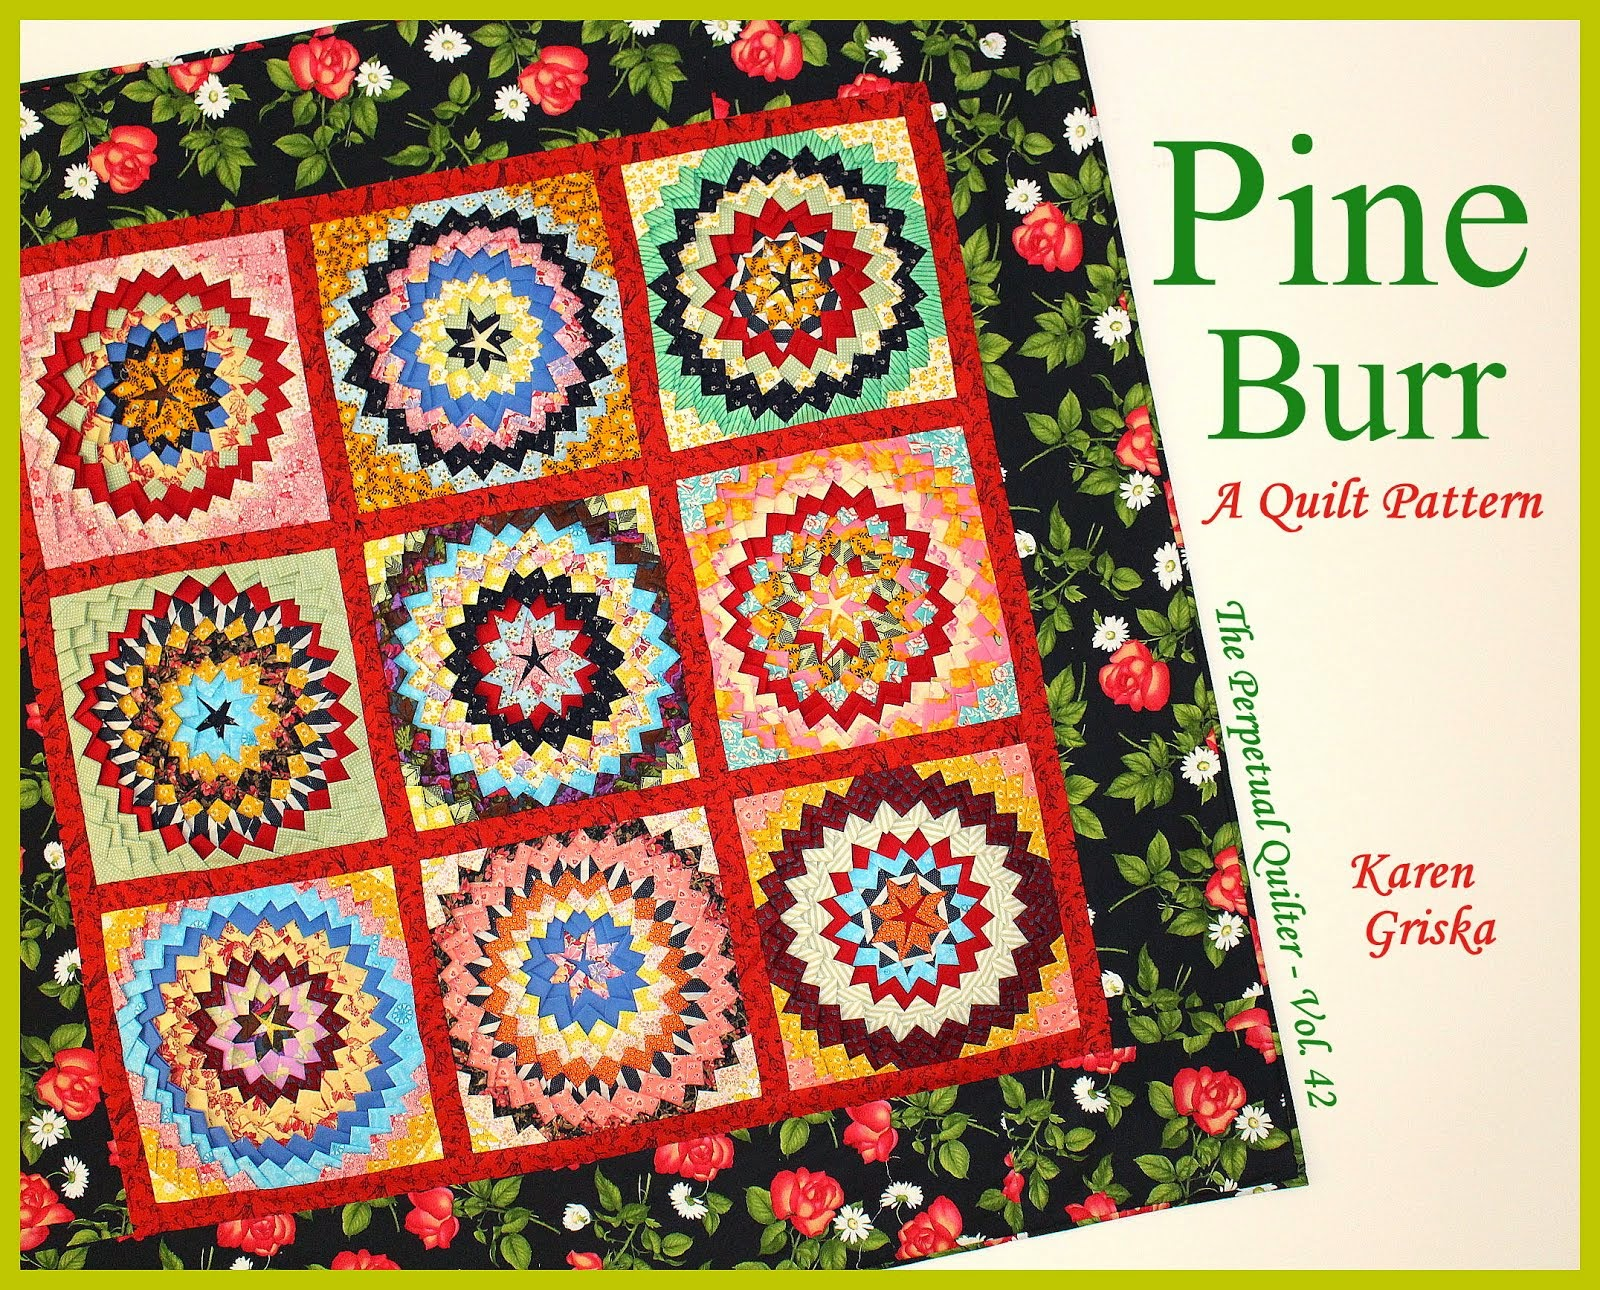 Fantastic Pine Burr Quilt!